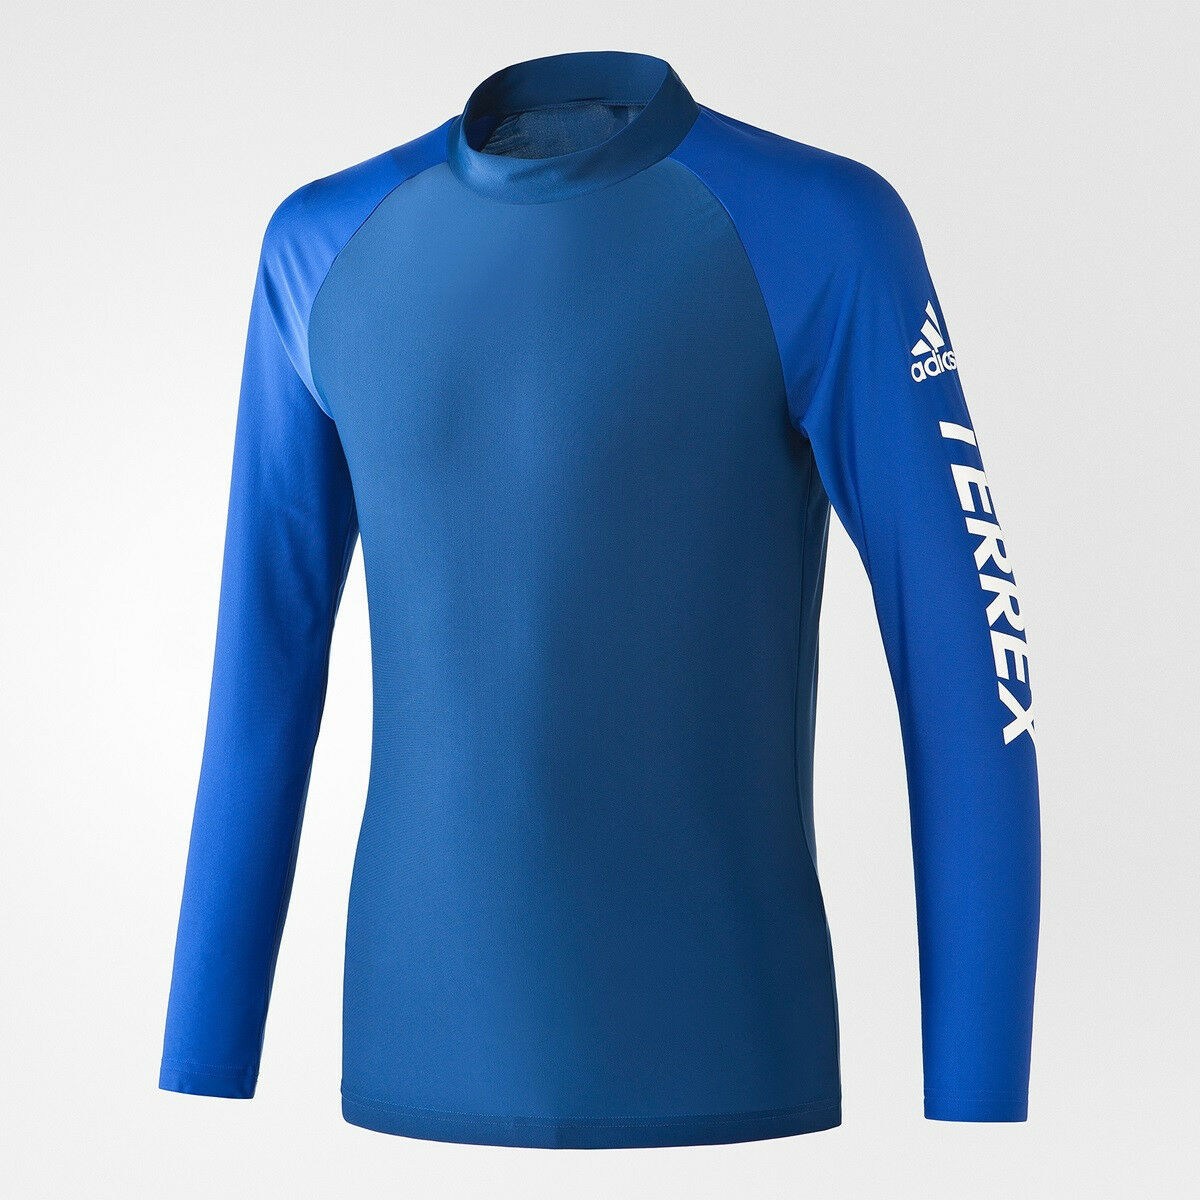 Adidas Voyager Rashguard  L S (BI4259) Swim Beach Surf Wear Shirt Top  best sale